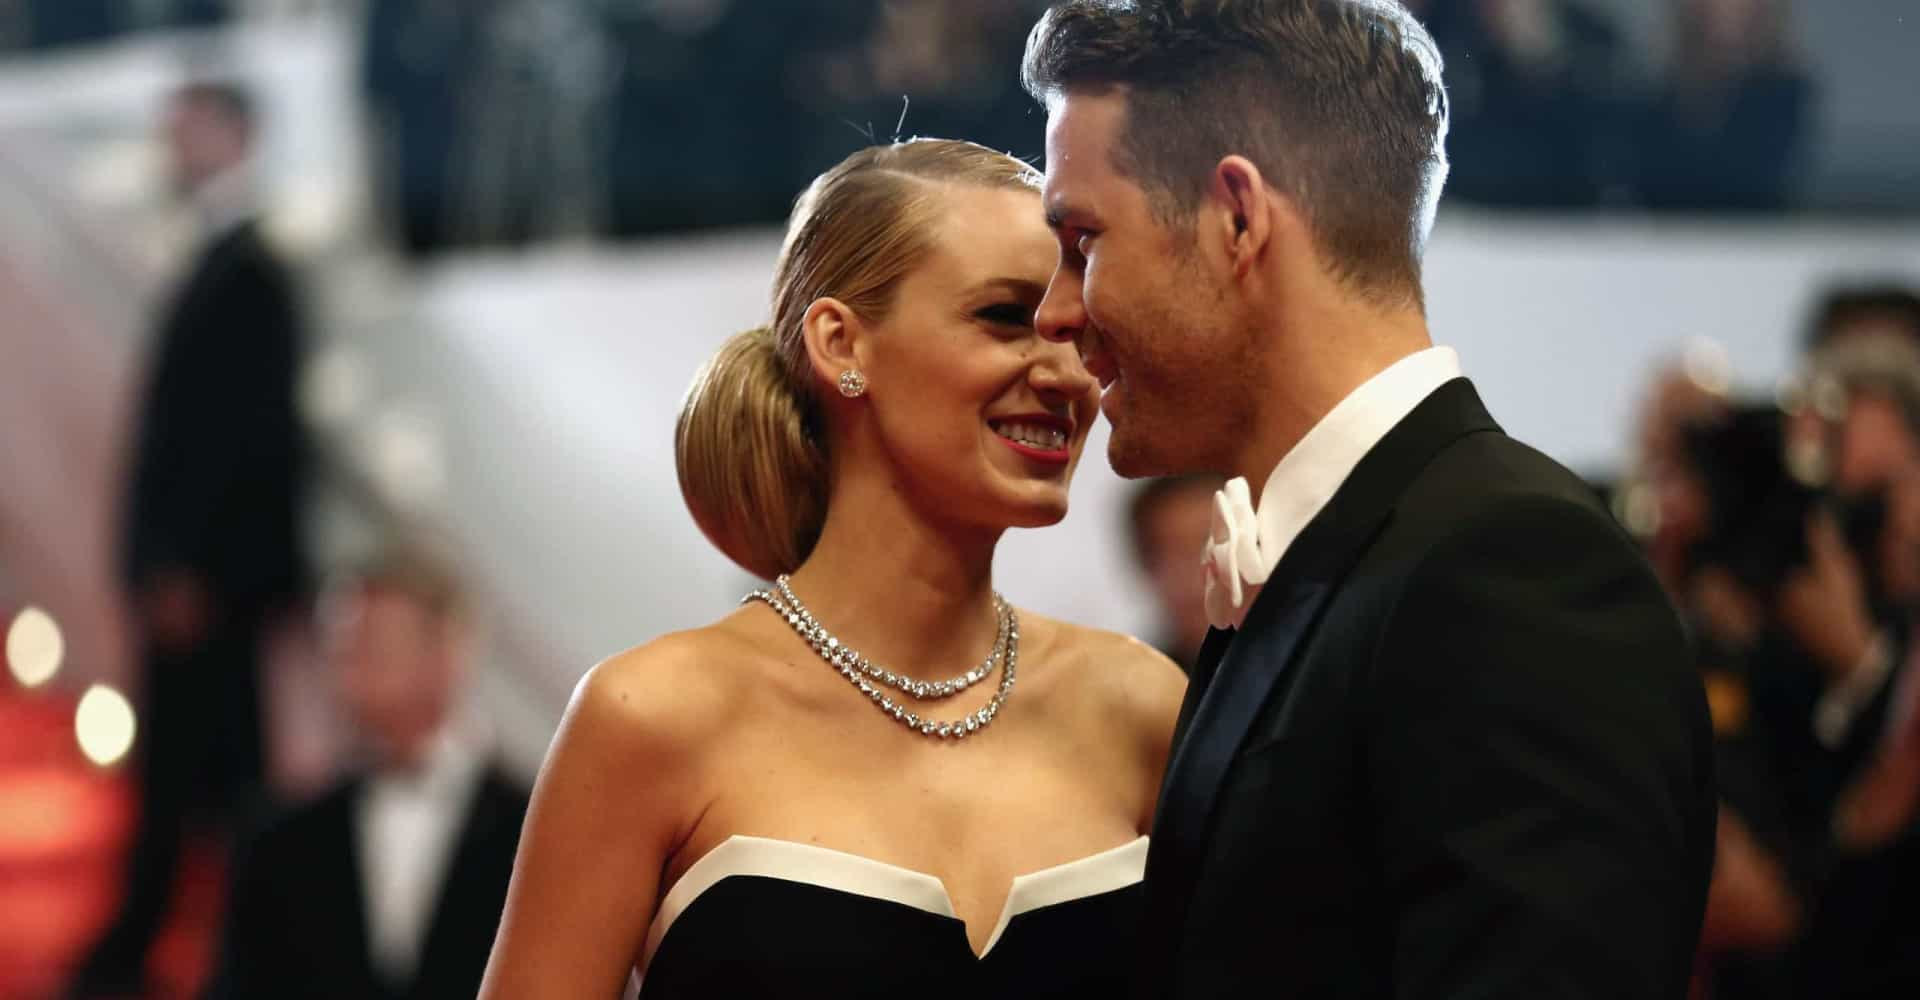 Let's talk about love: celebrities' secrets to long-lasting relationships